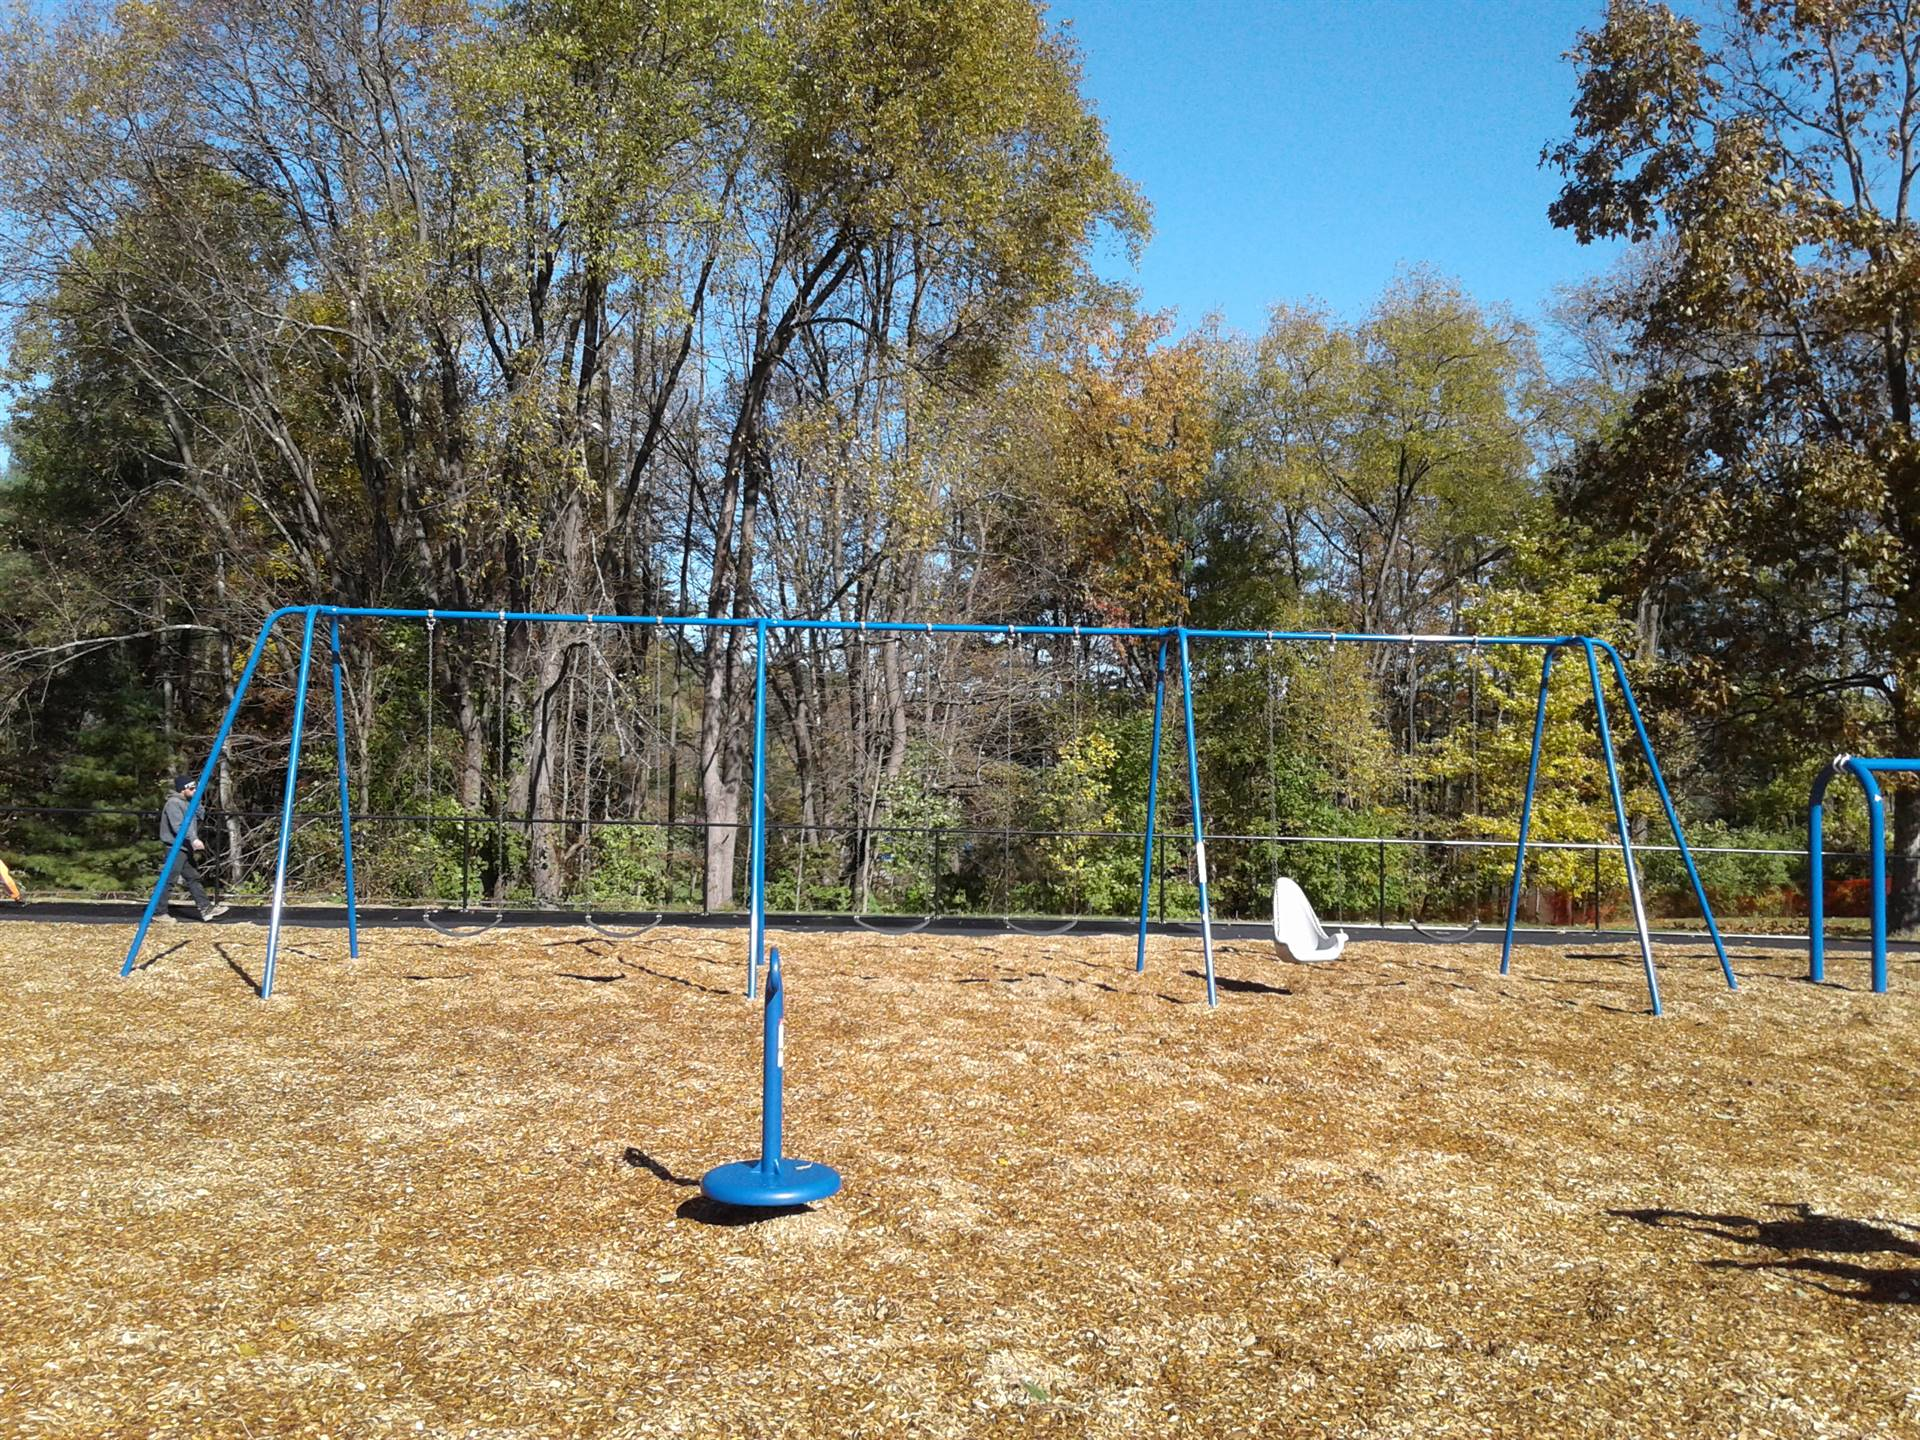 New Greenlawn Playground - Swings